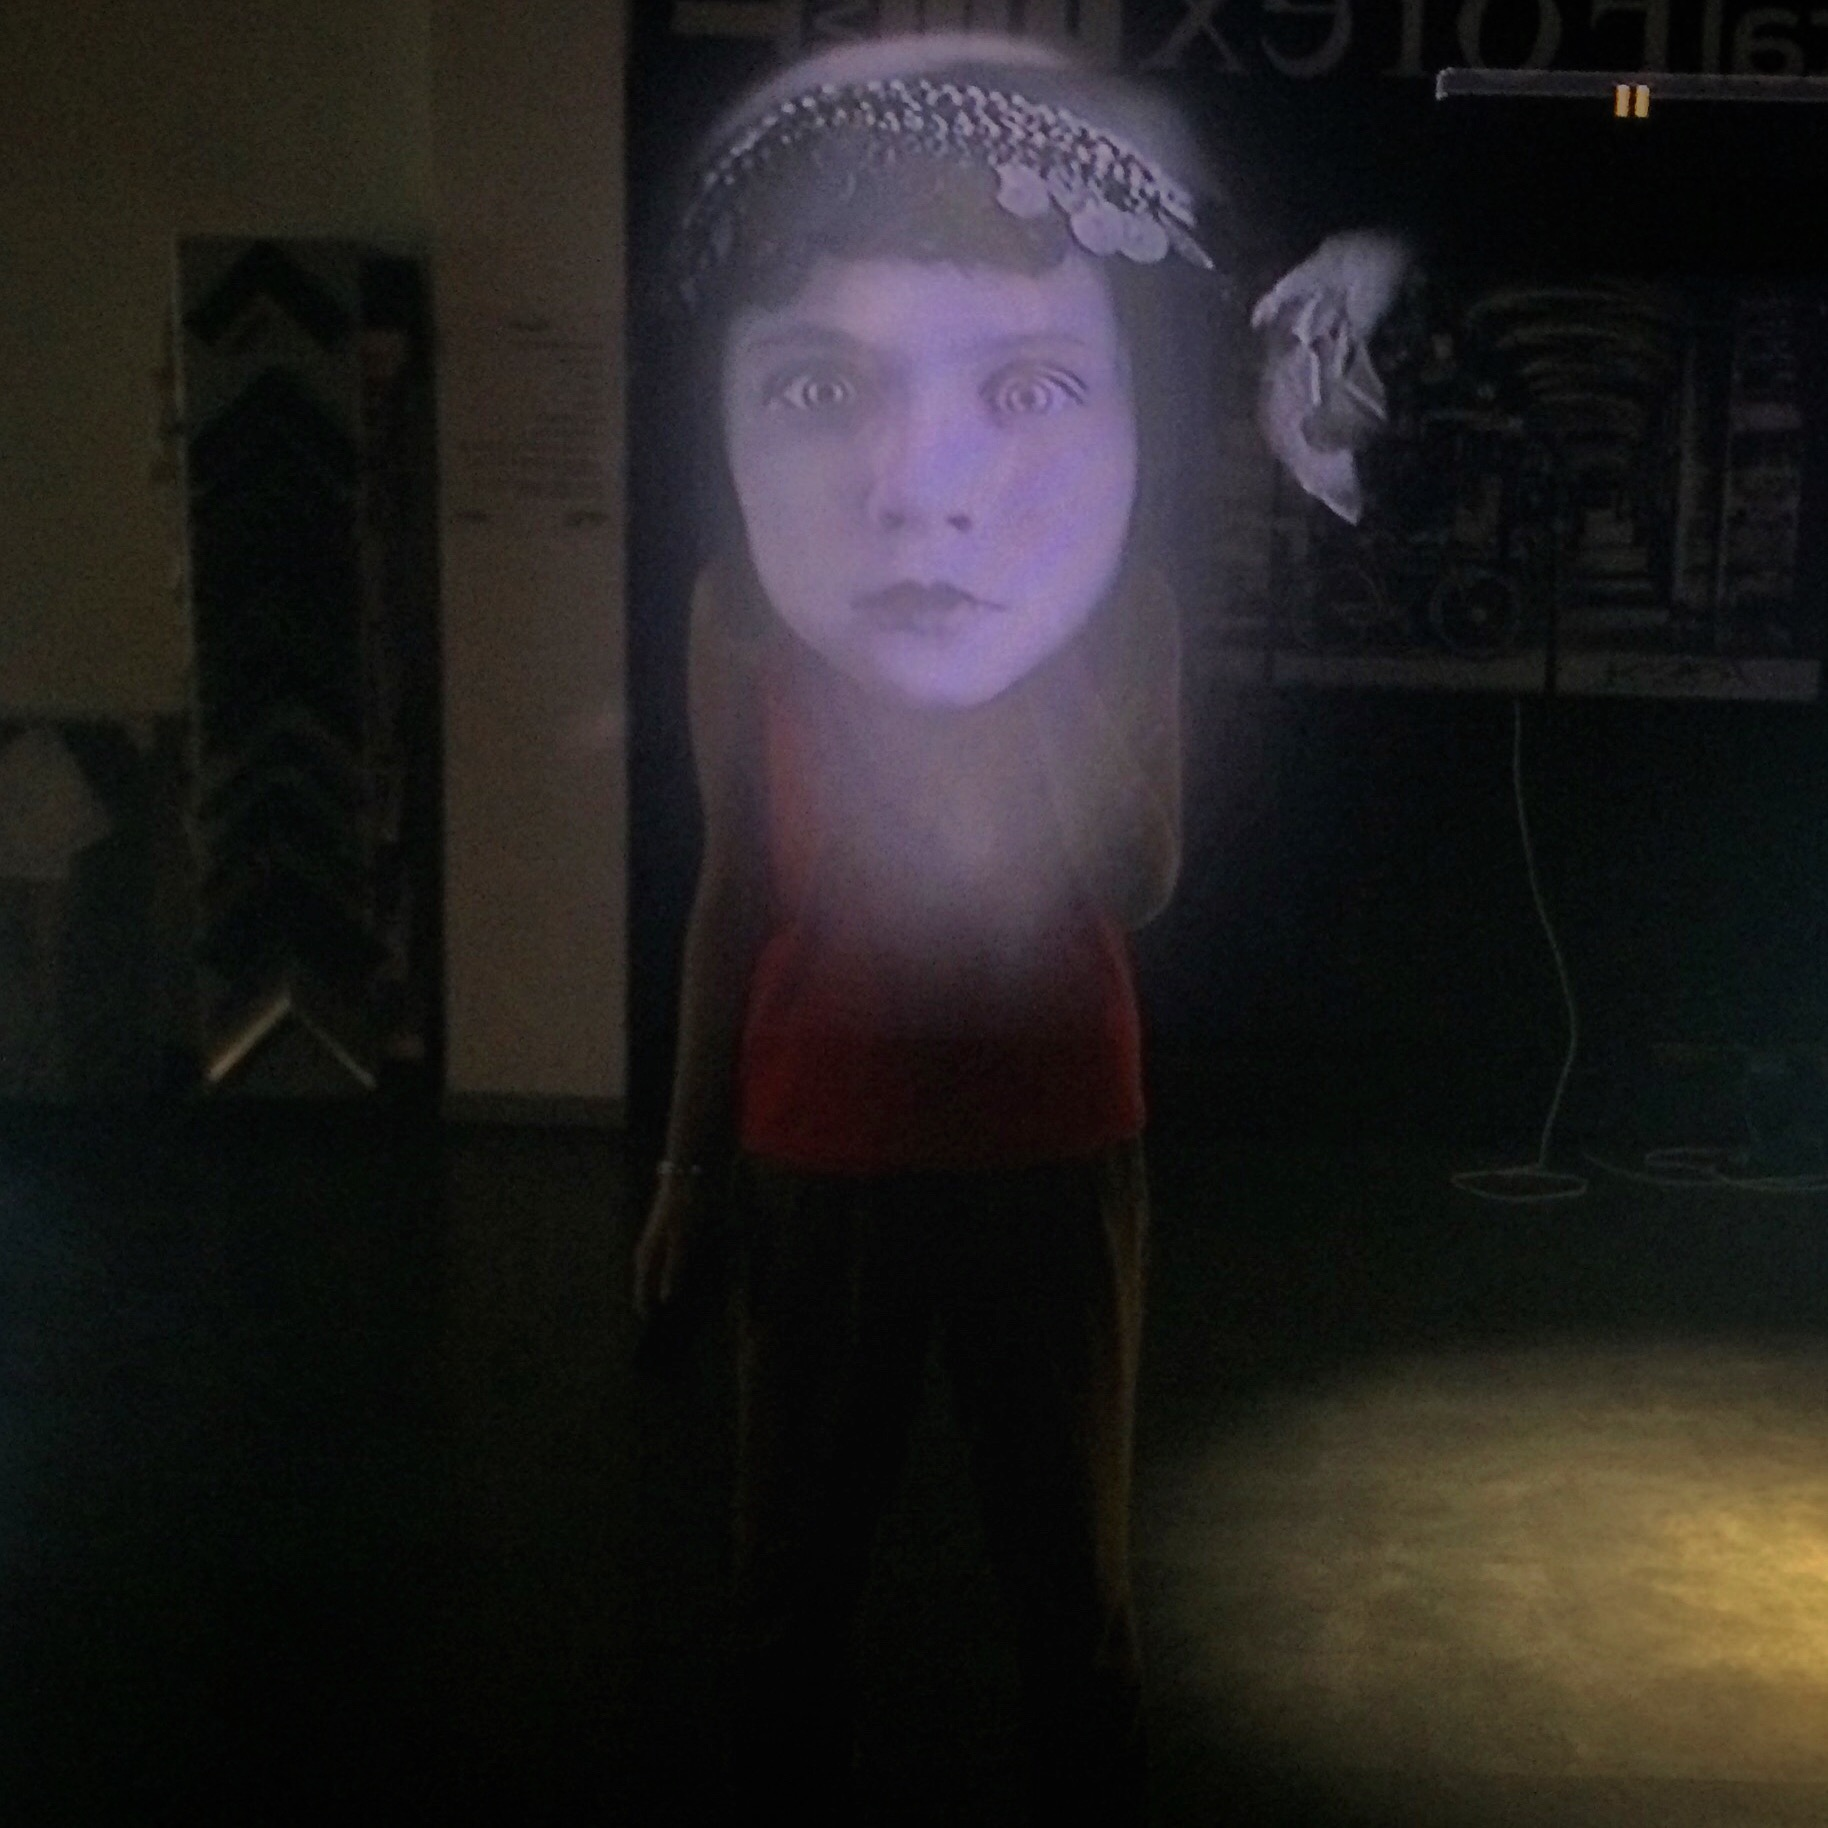 Looking Into The Mirror , Interactive Video Art Wall  Commissioned by:  TRISON and Clorofila Gallery  Exhibited at:  Matadero, Madrid, Spain, 2015  Materials:  video, LED screen, two-way mirror, custom screen housing  Dimensions:  47 x 79 x 8 in